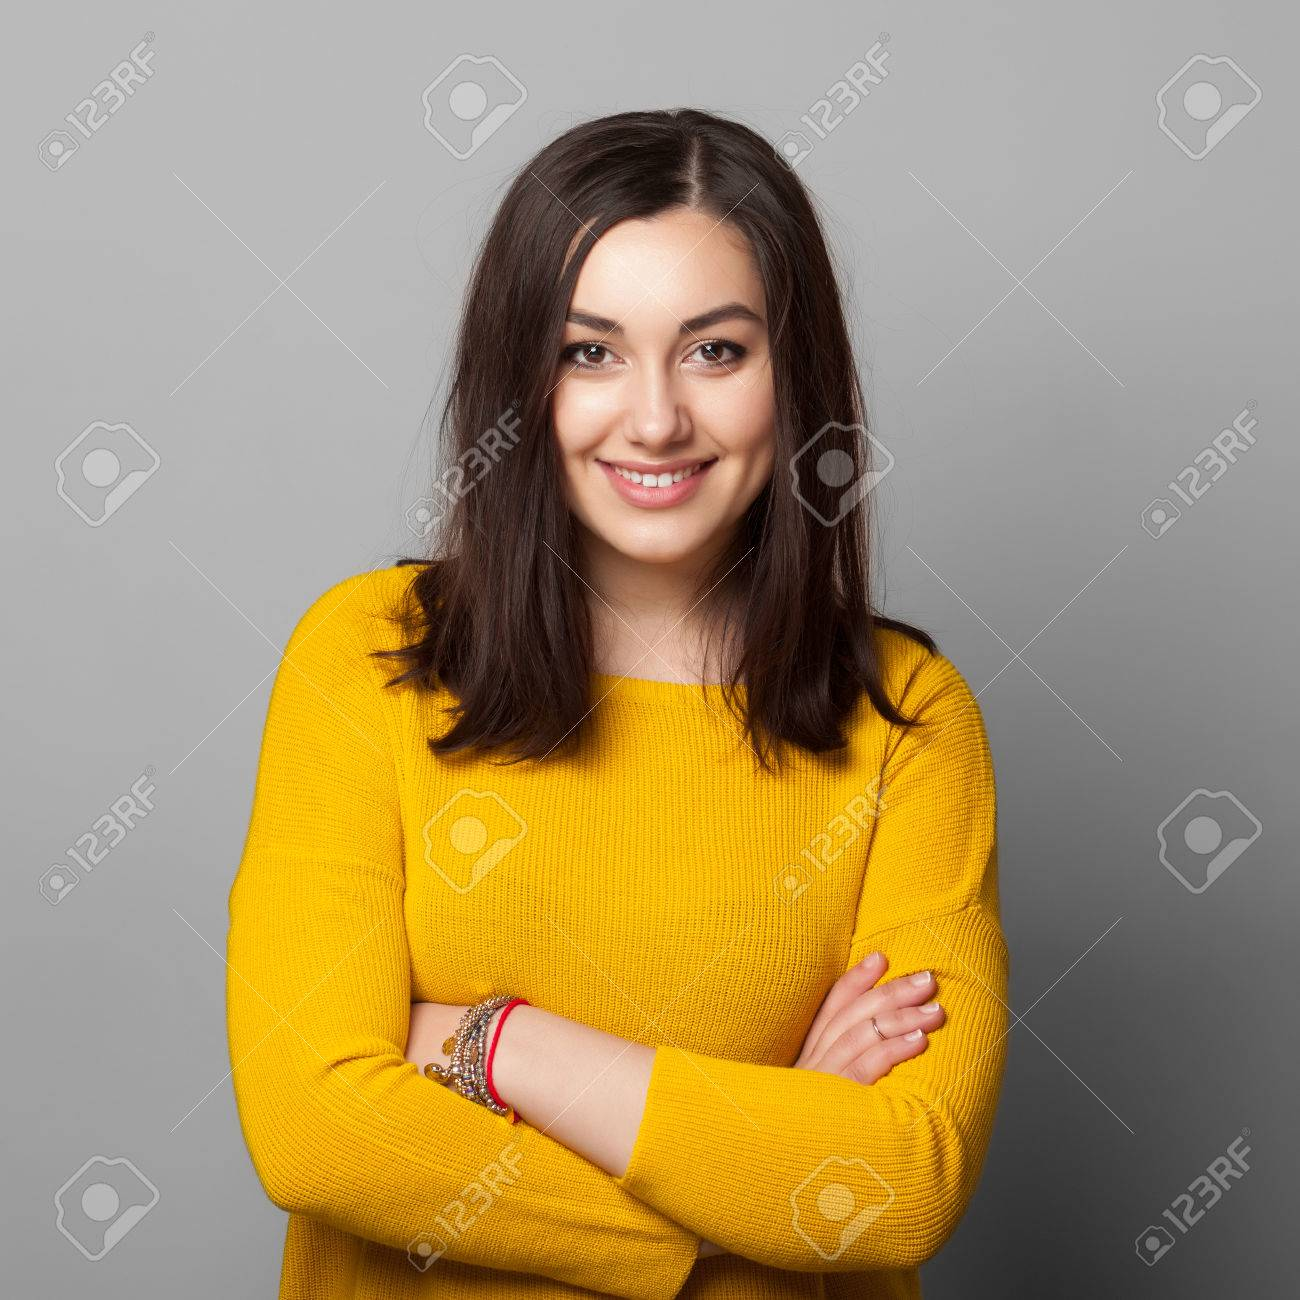 Smiling business woman with folded hands against grey background. Toothy smile, crossed arms. - 51671081